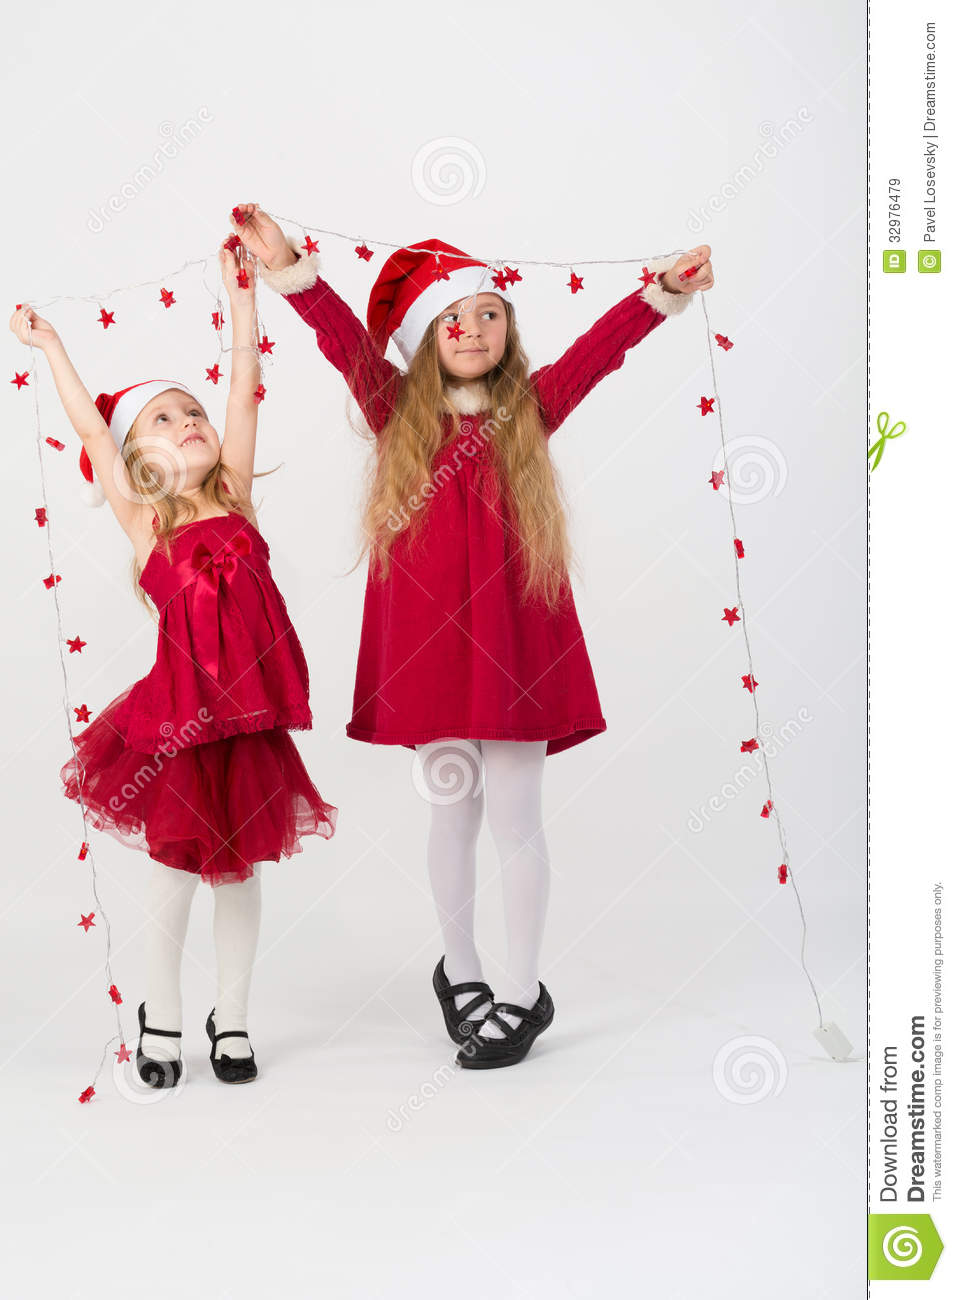 Girls in a red dress caps santa claus holding garland